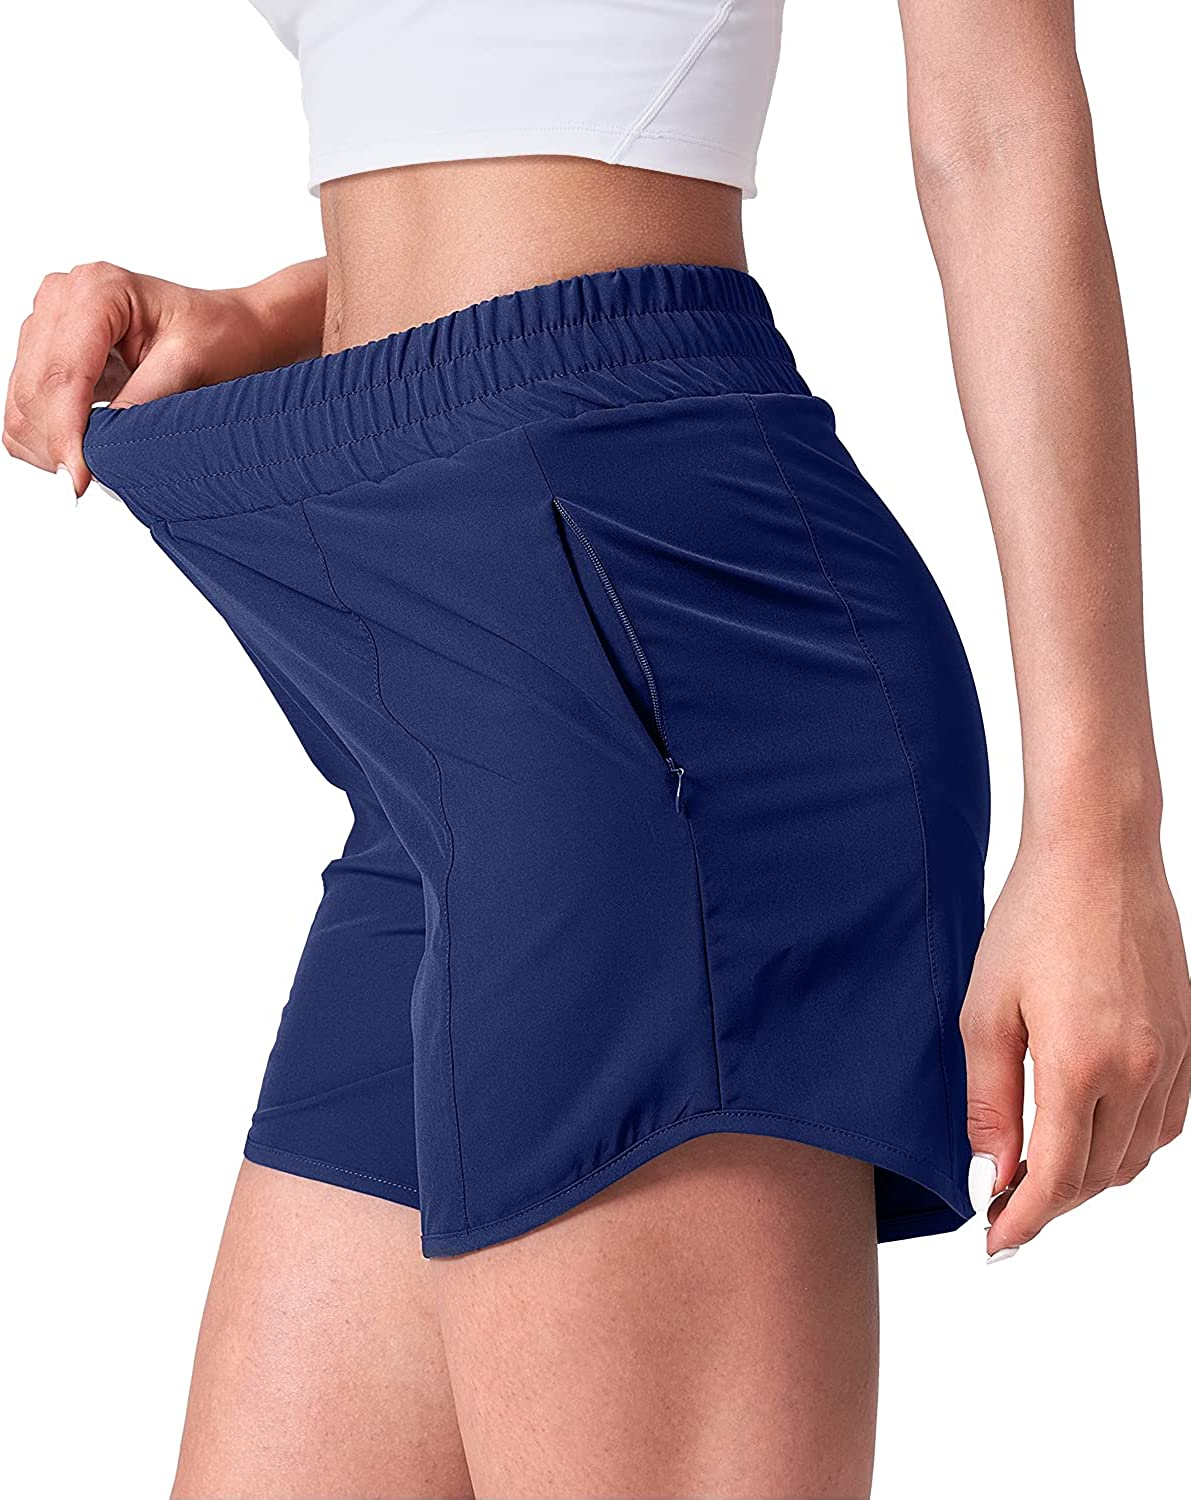 Inventory cleanup Popular brand in the world selling sale CELER Women's Running Shorts Quick Workout Phone Dry with